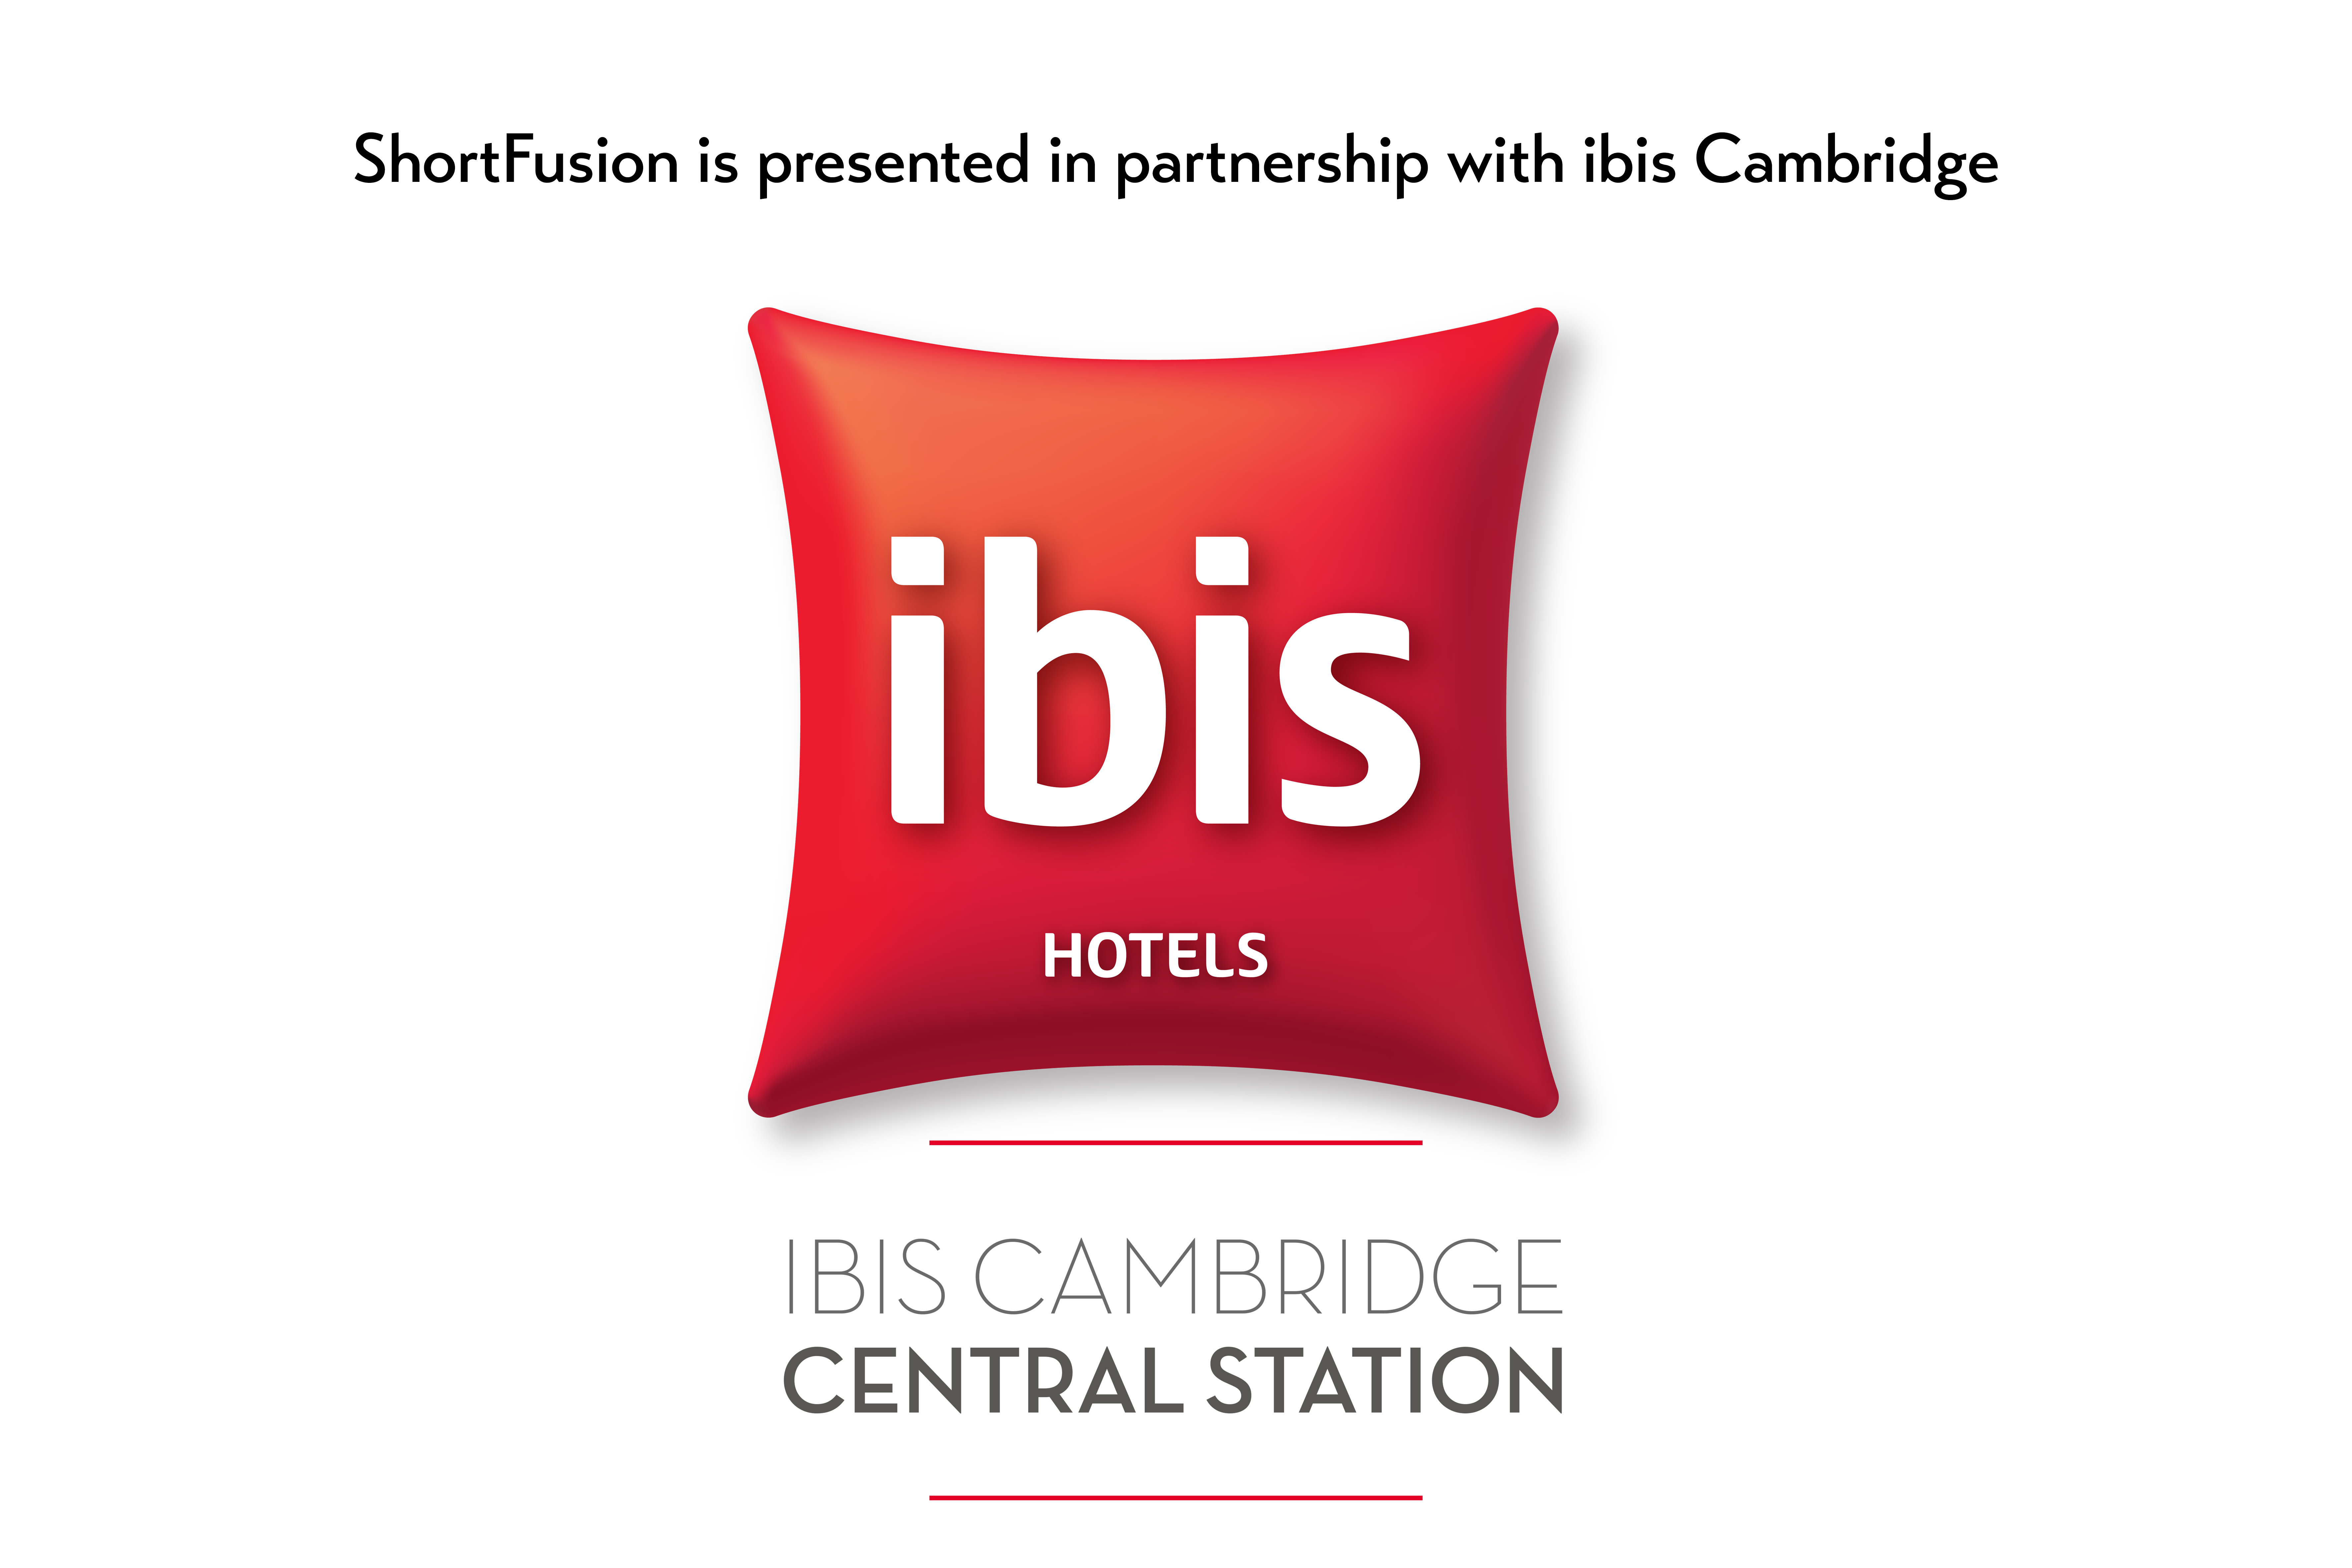 short fusion is presented in partnership with ibis cambridge